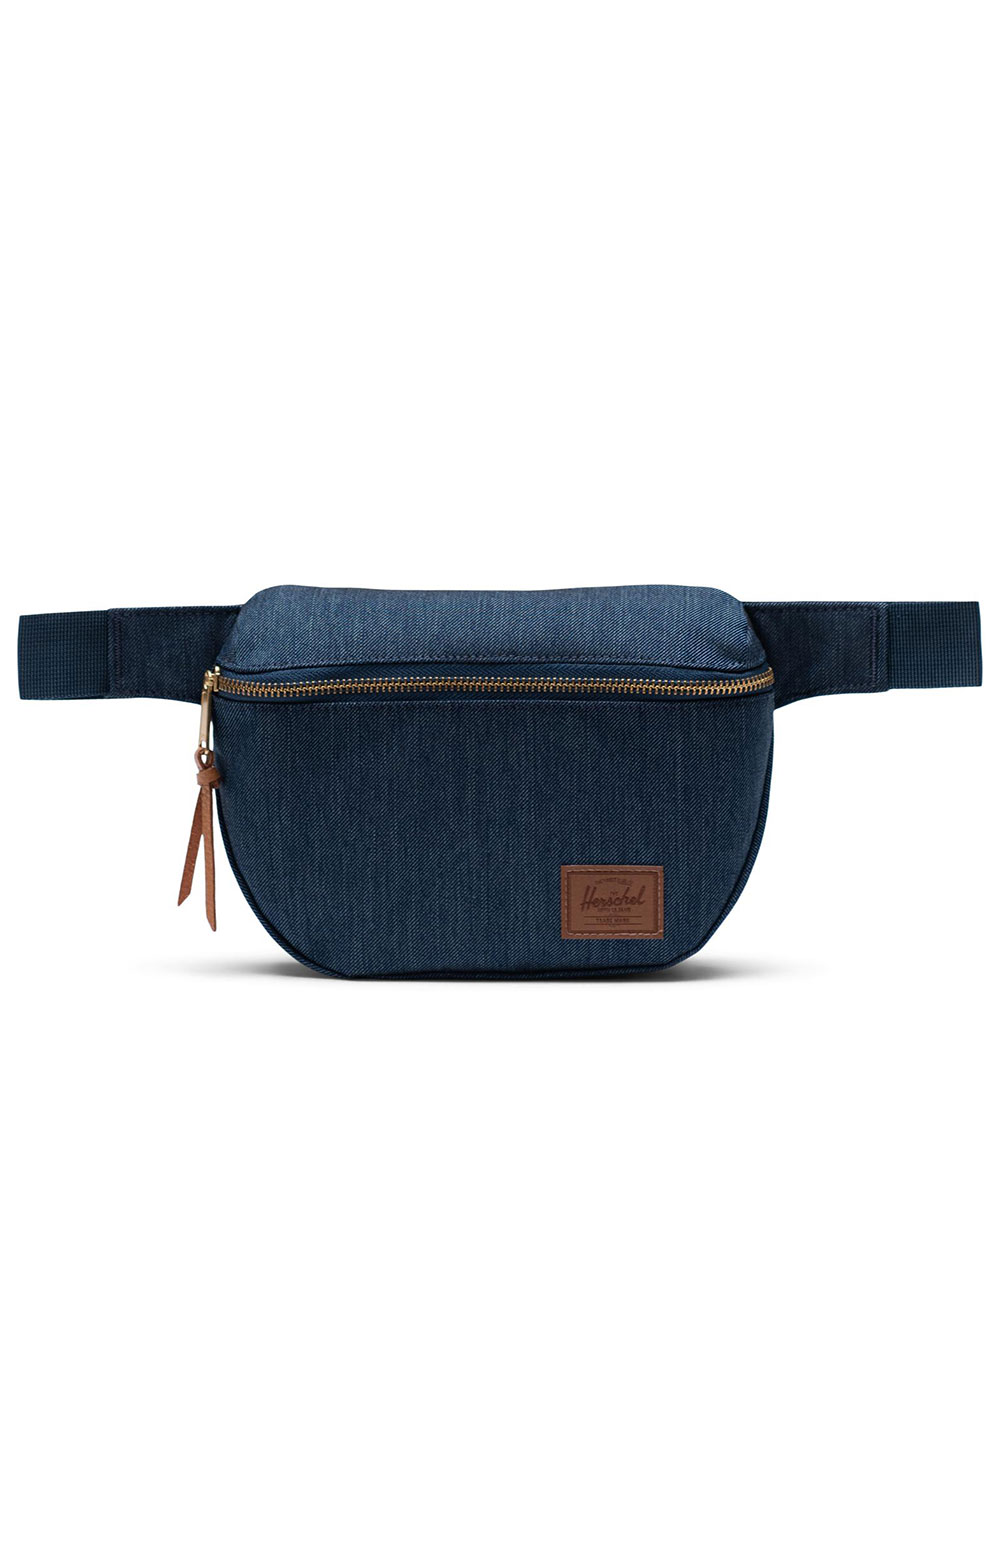 Fifteen Hip Pack - Indigo Denim X